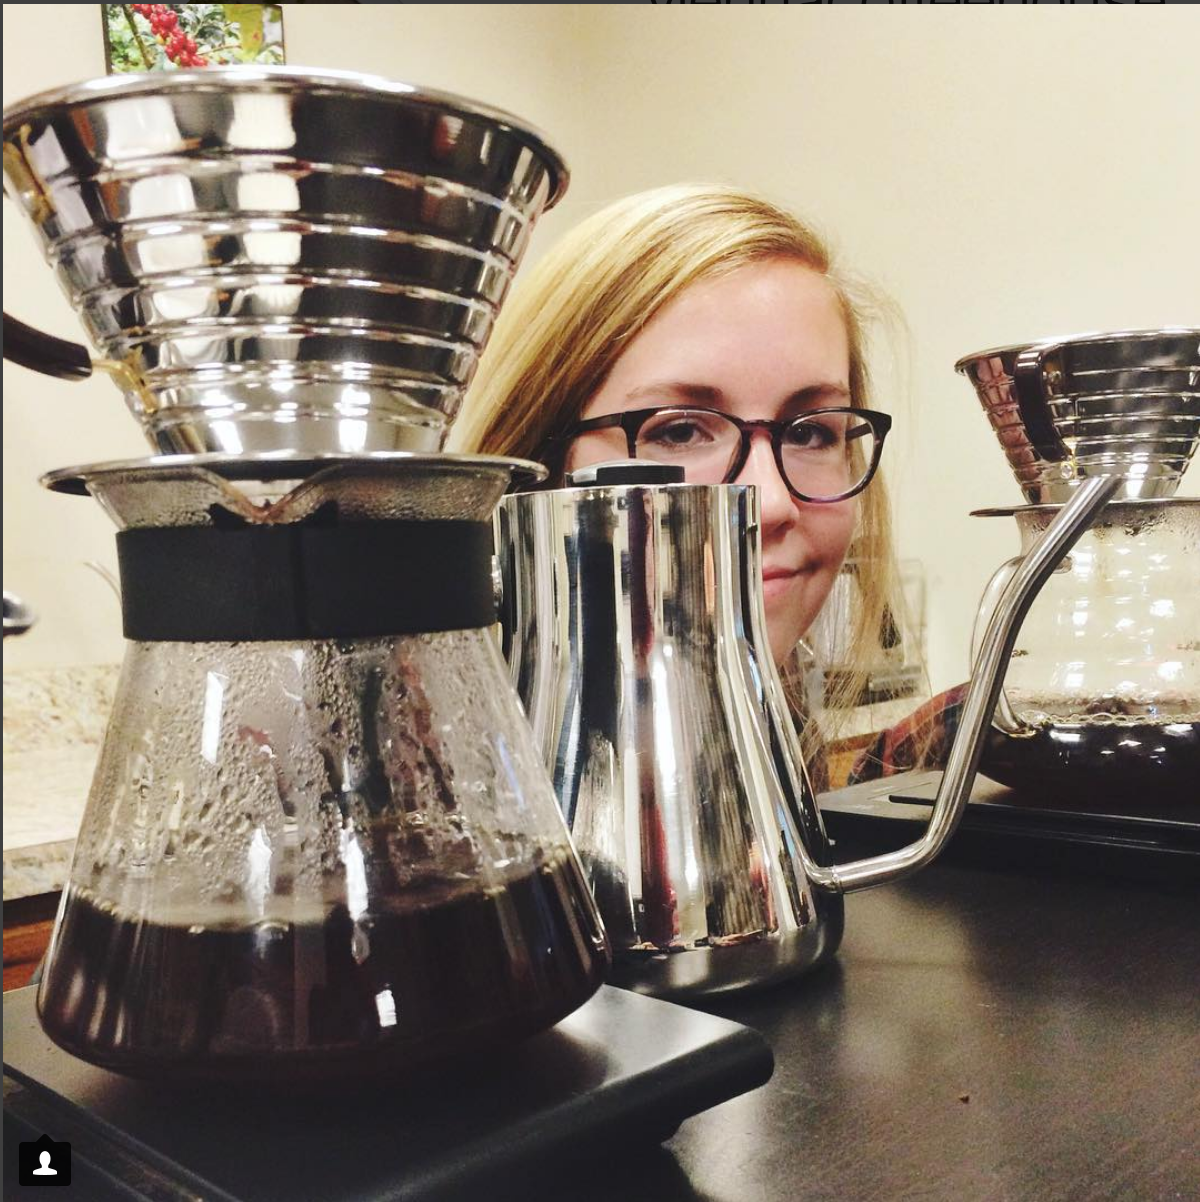 Kalita Coffee Brewer